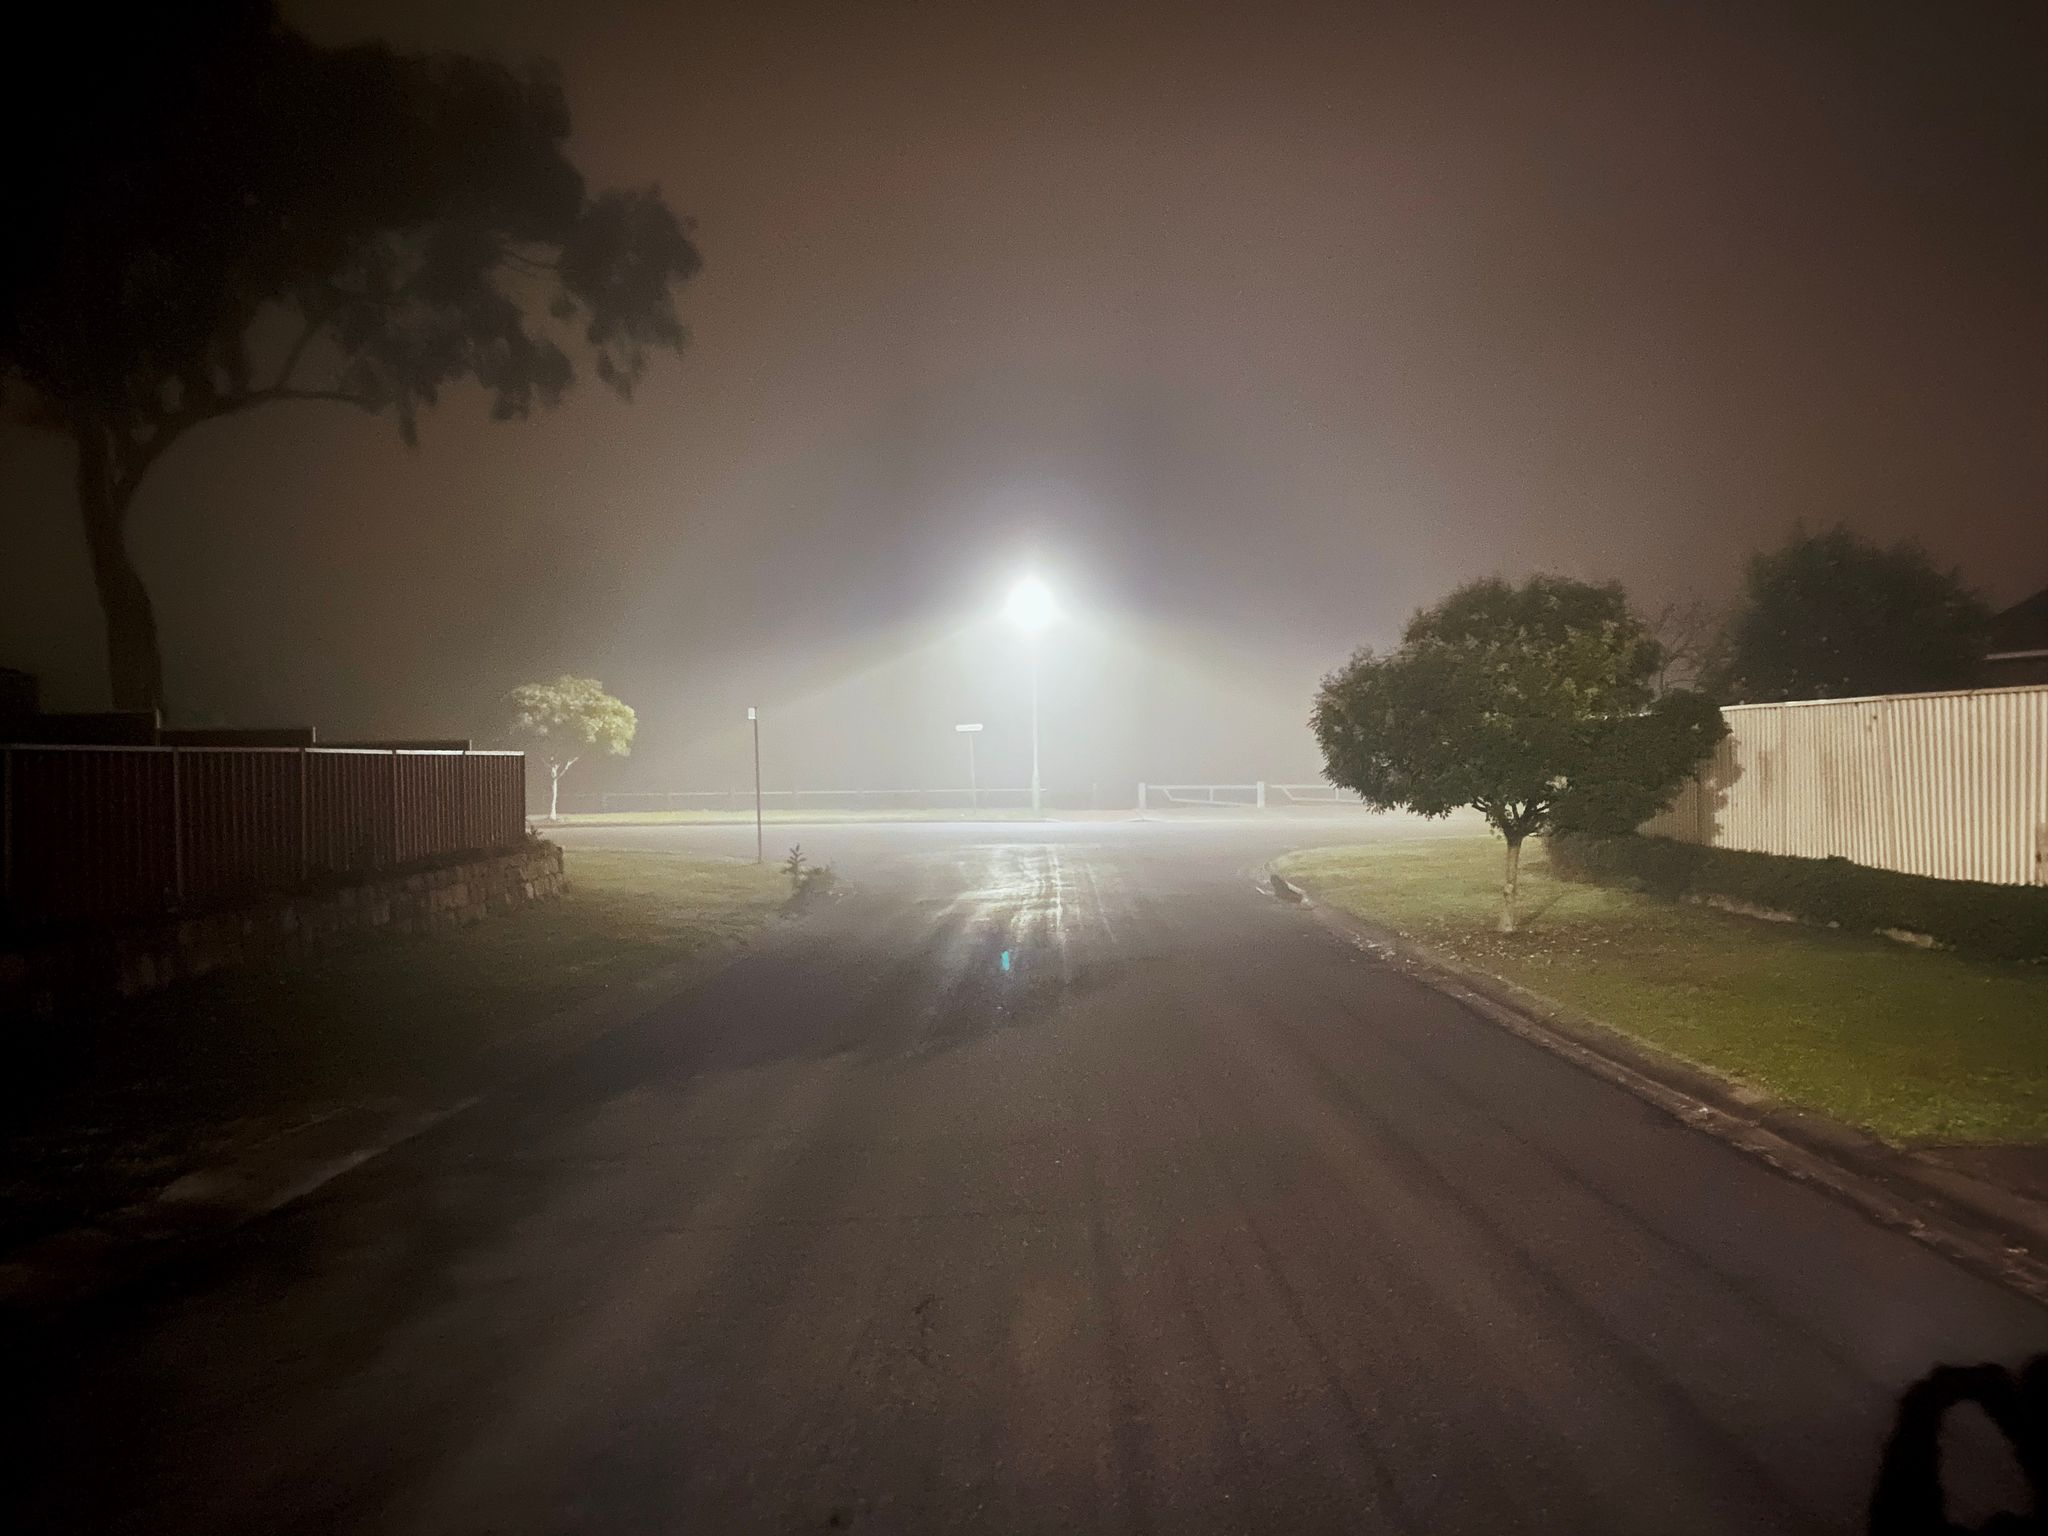 A photo taken from the middle of the road looking towards a t-intersection. A street light is at the end of the street and it's REALLY foggy.